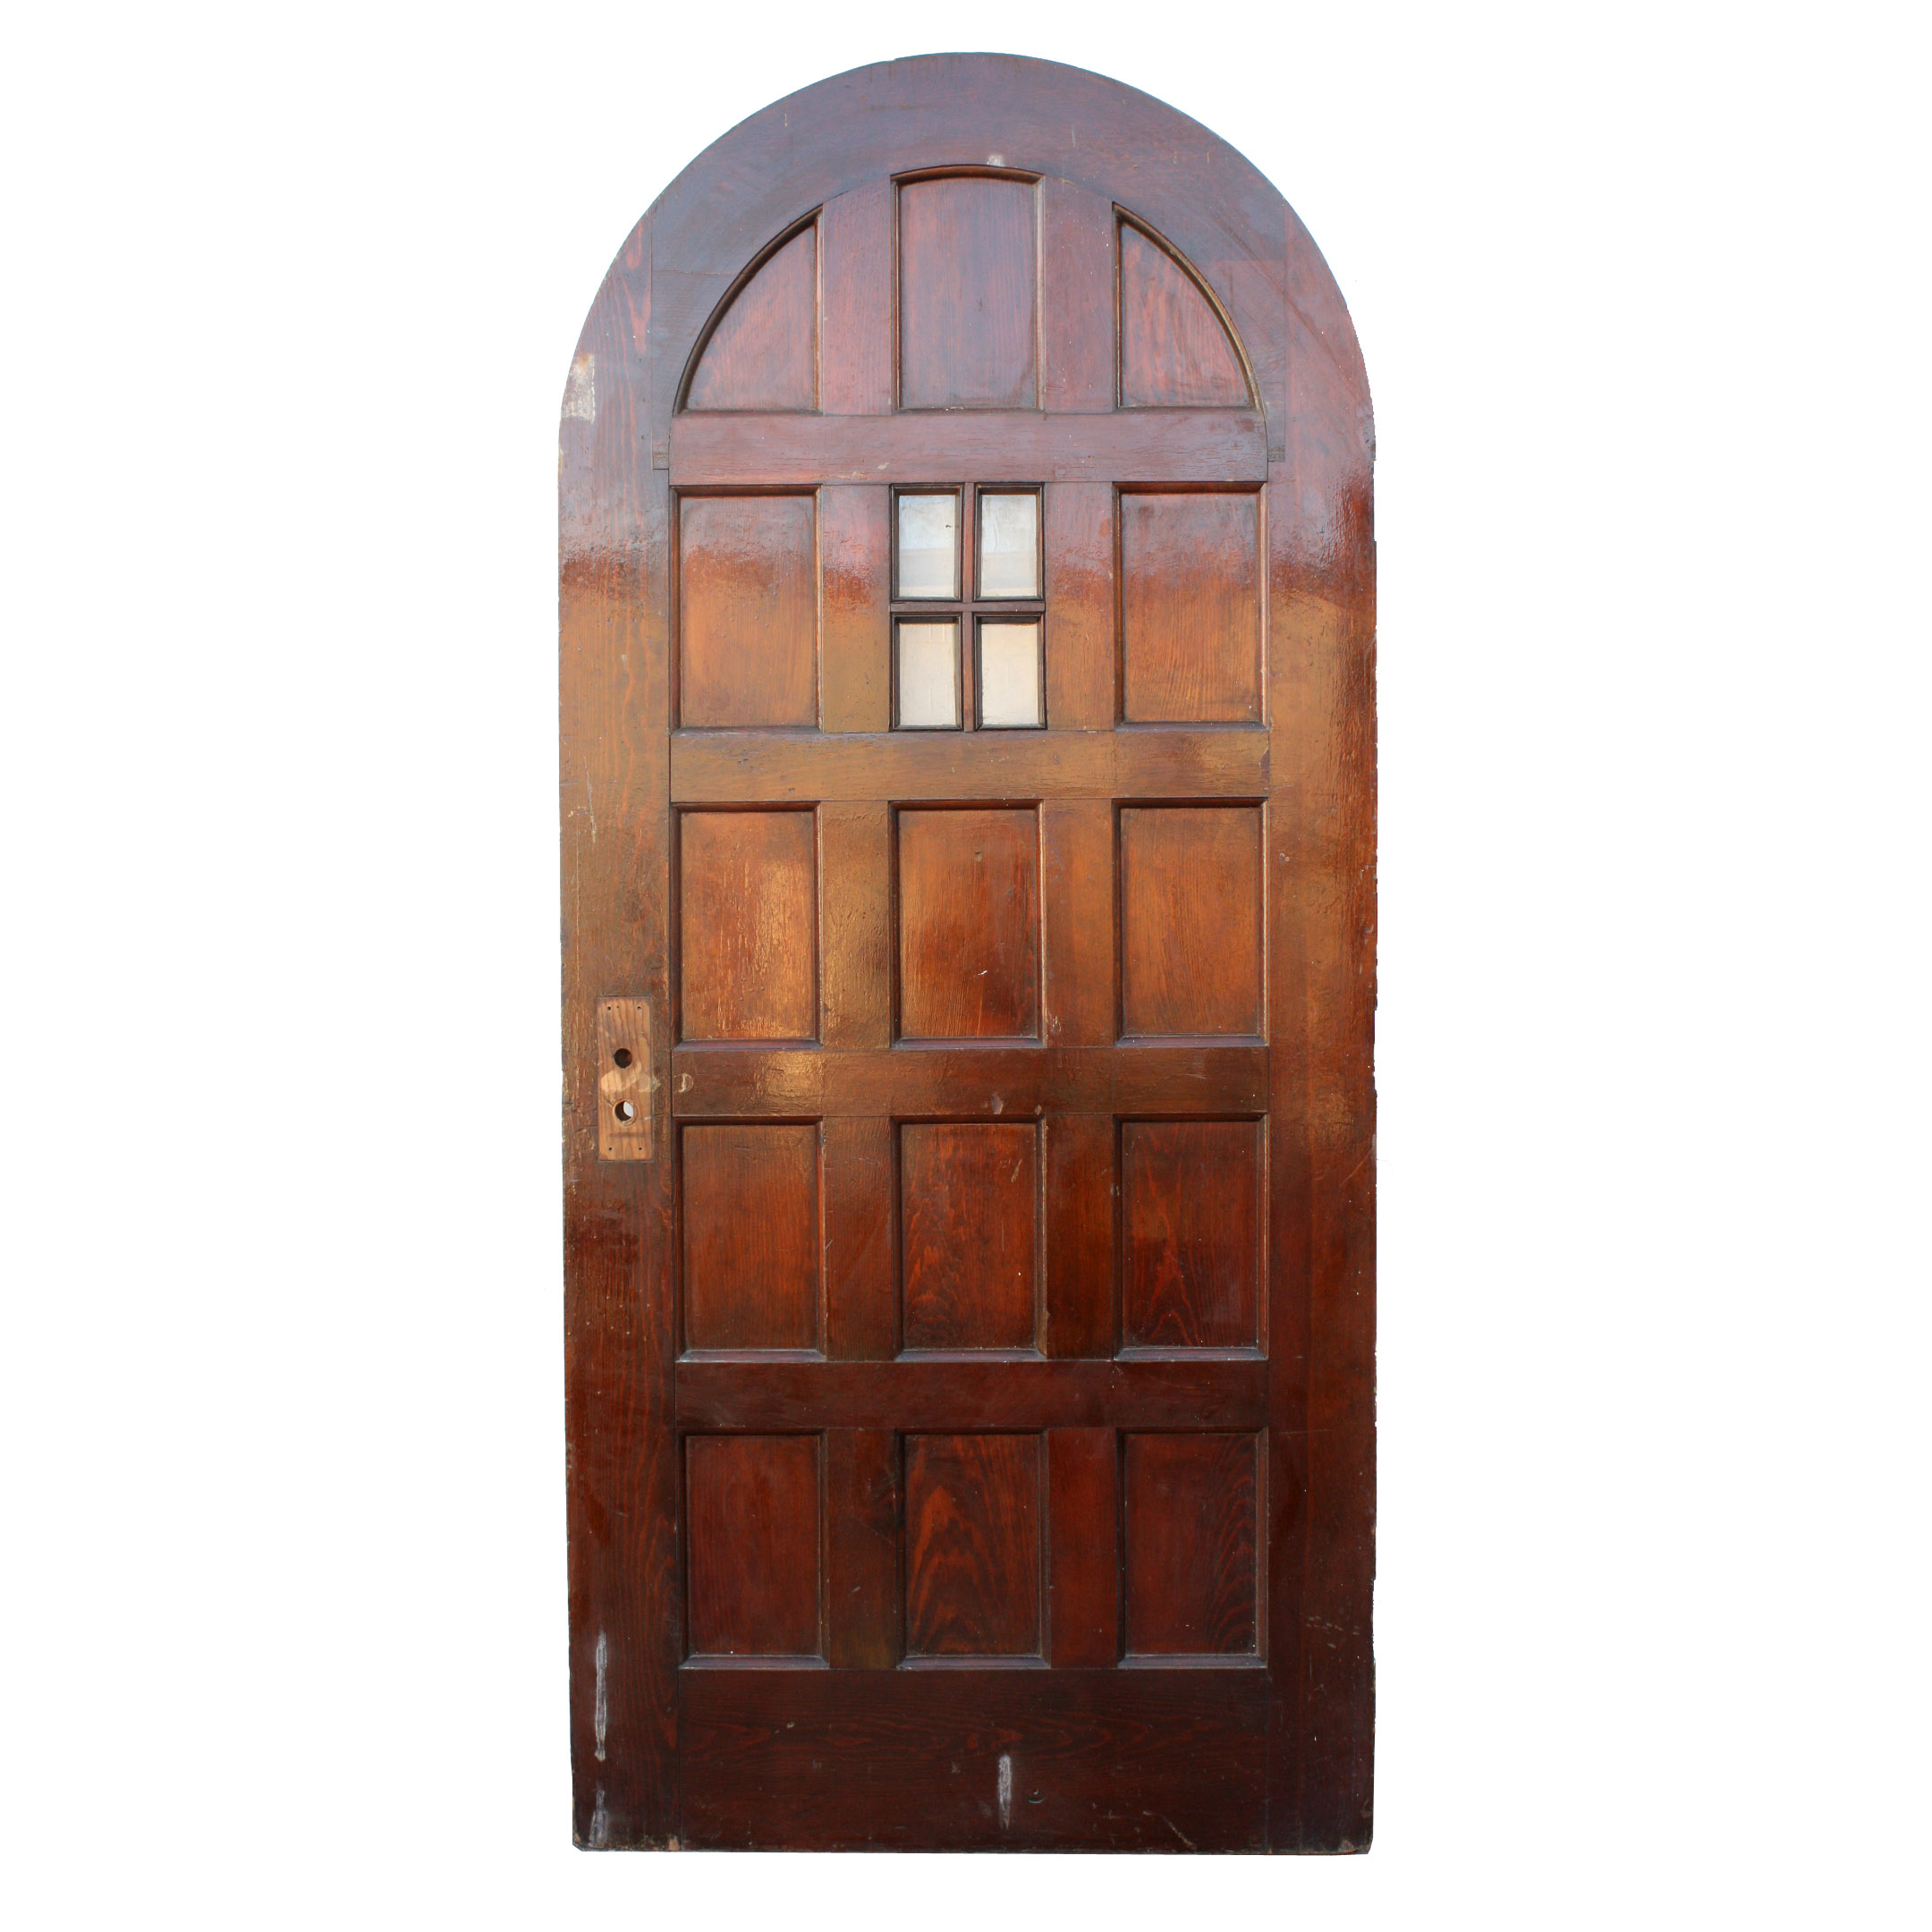 Antique exterior 36 arched door with panels and window for Exterior doors for sale